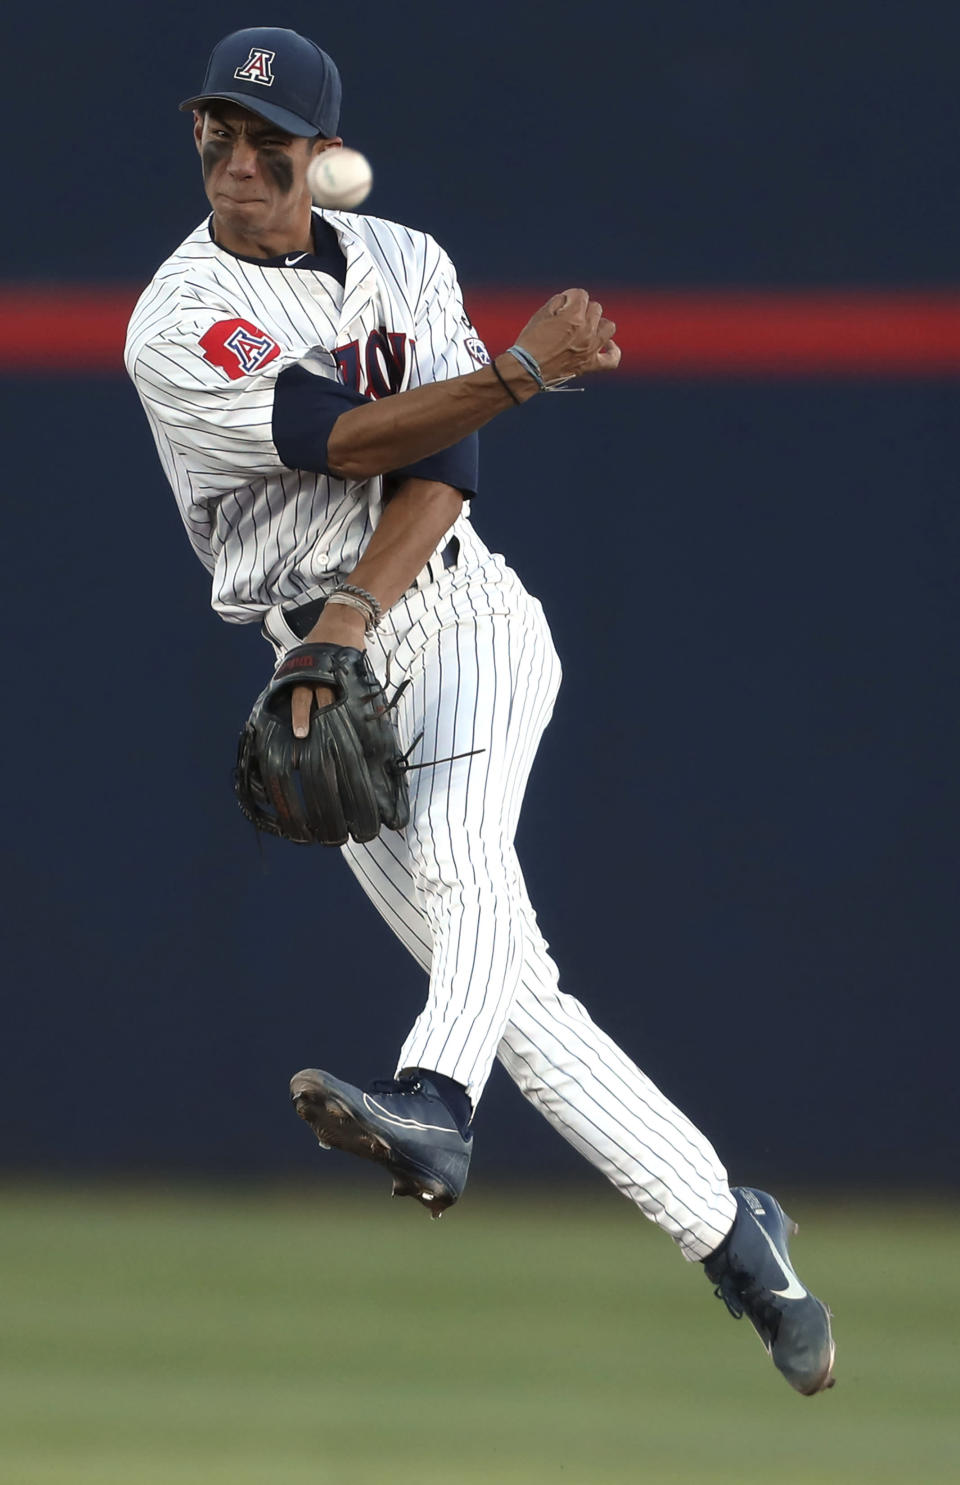 Arizona's Kobe Kato (1) makes the throw to get Mississippi's Jacob Gonzalez during the fourth inning in an NCAA college baseball tournament super regional game Friday, June 11, 2021, in Tucson, Ariz. (Kelly Presnell/Arizona Daily Star via AP)